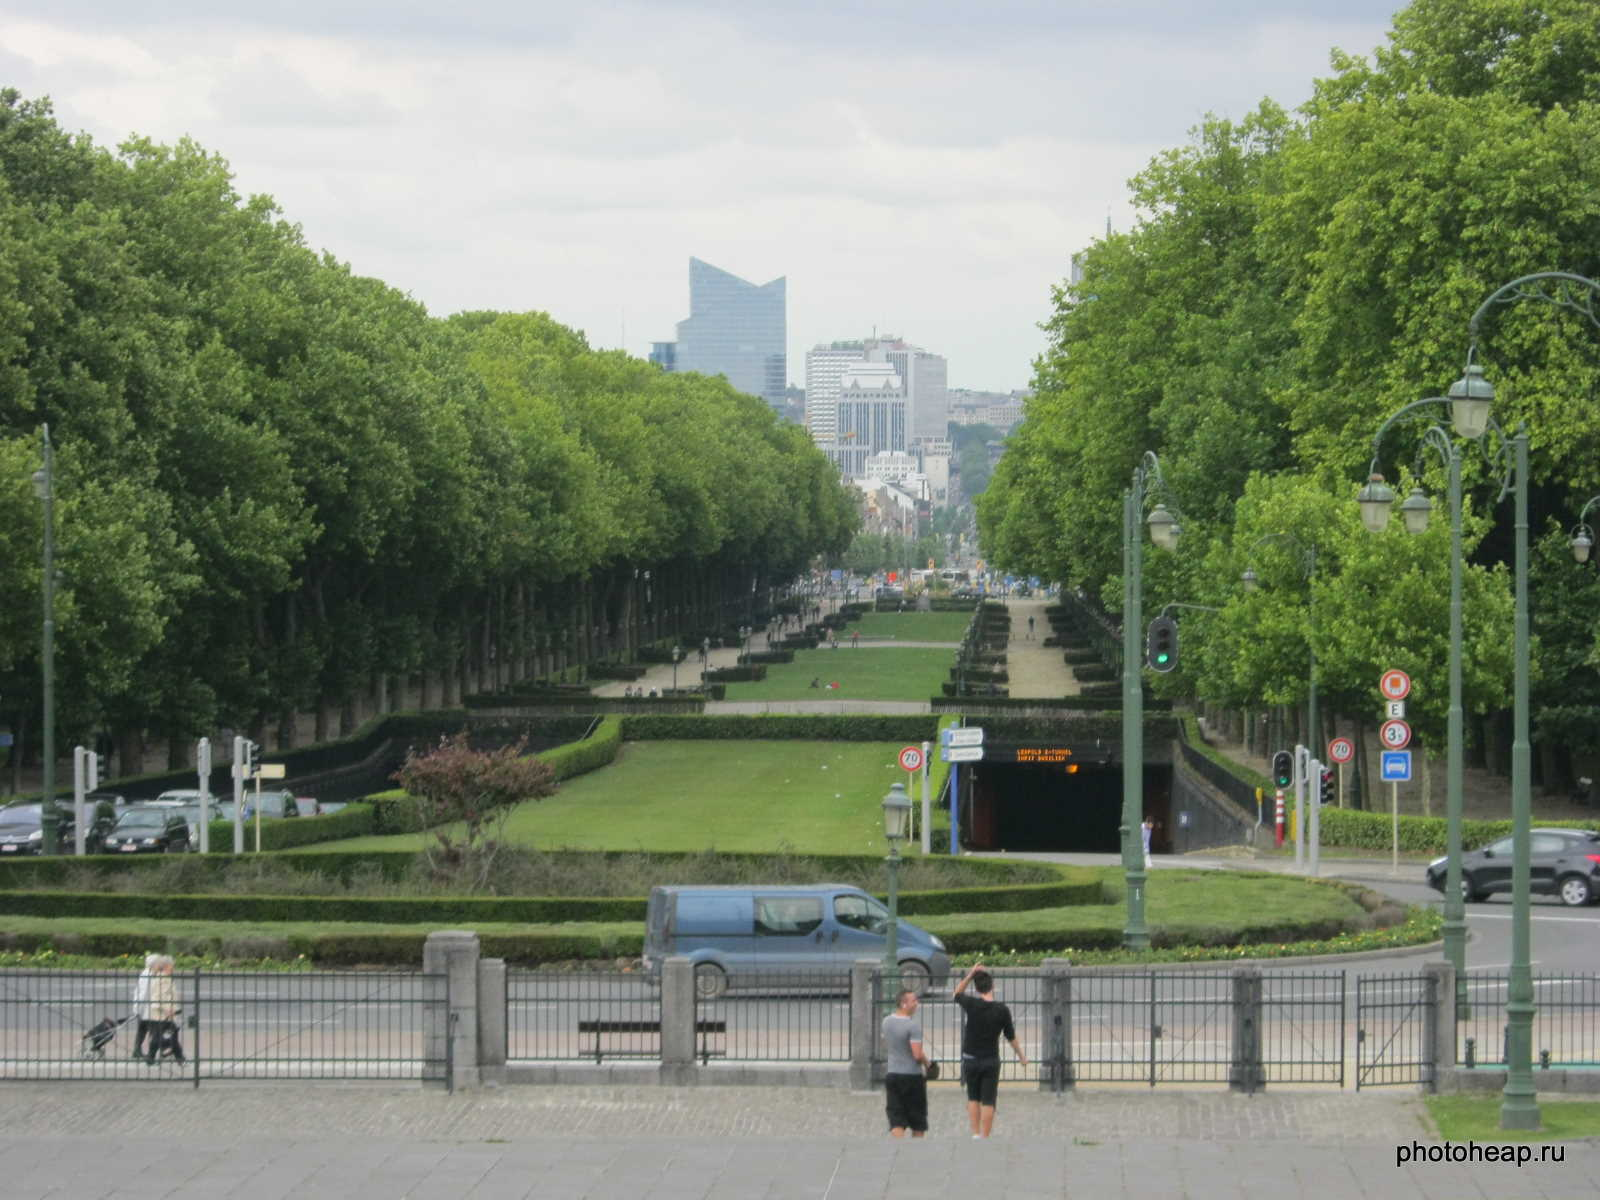 Brussels - Basilica park and tonnels